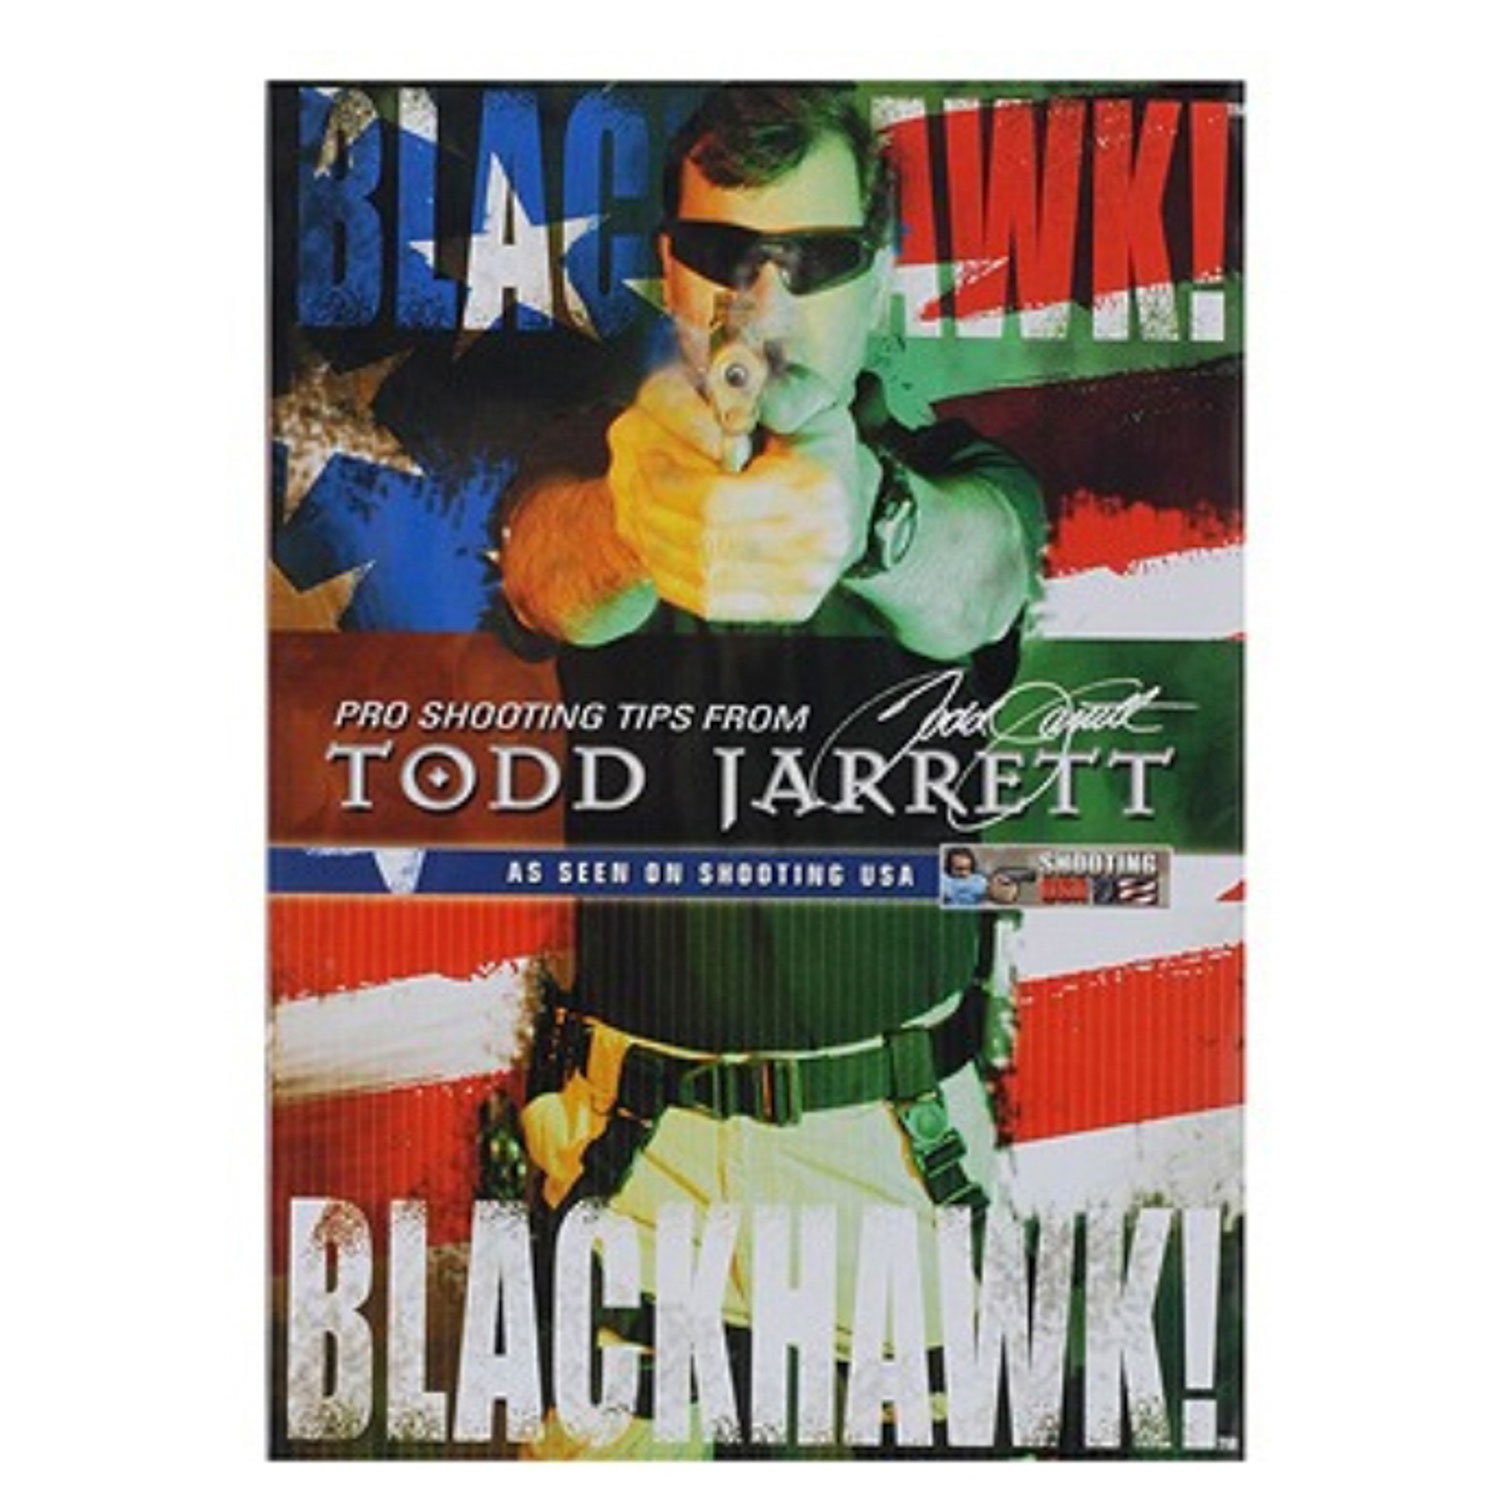 BlackHawk Pro Shooting Tips From Todd Jarrett DVD